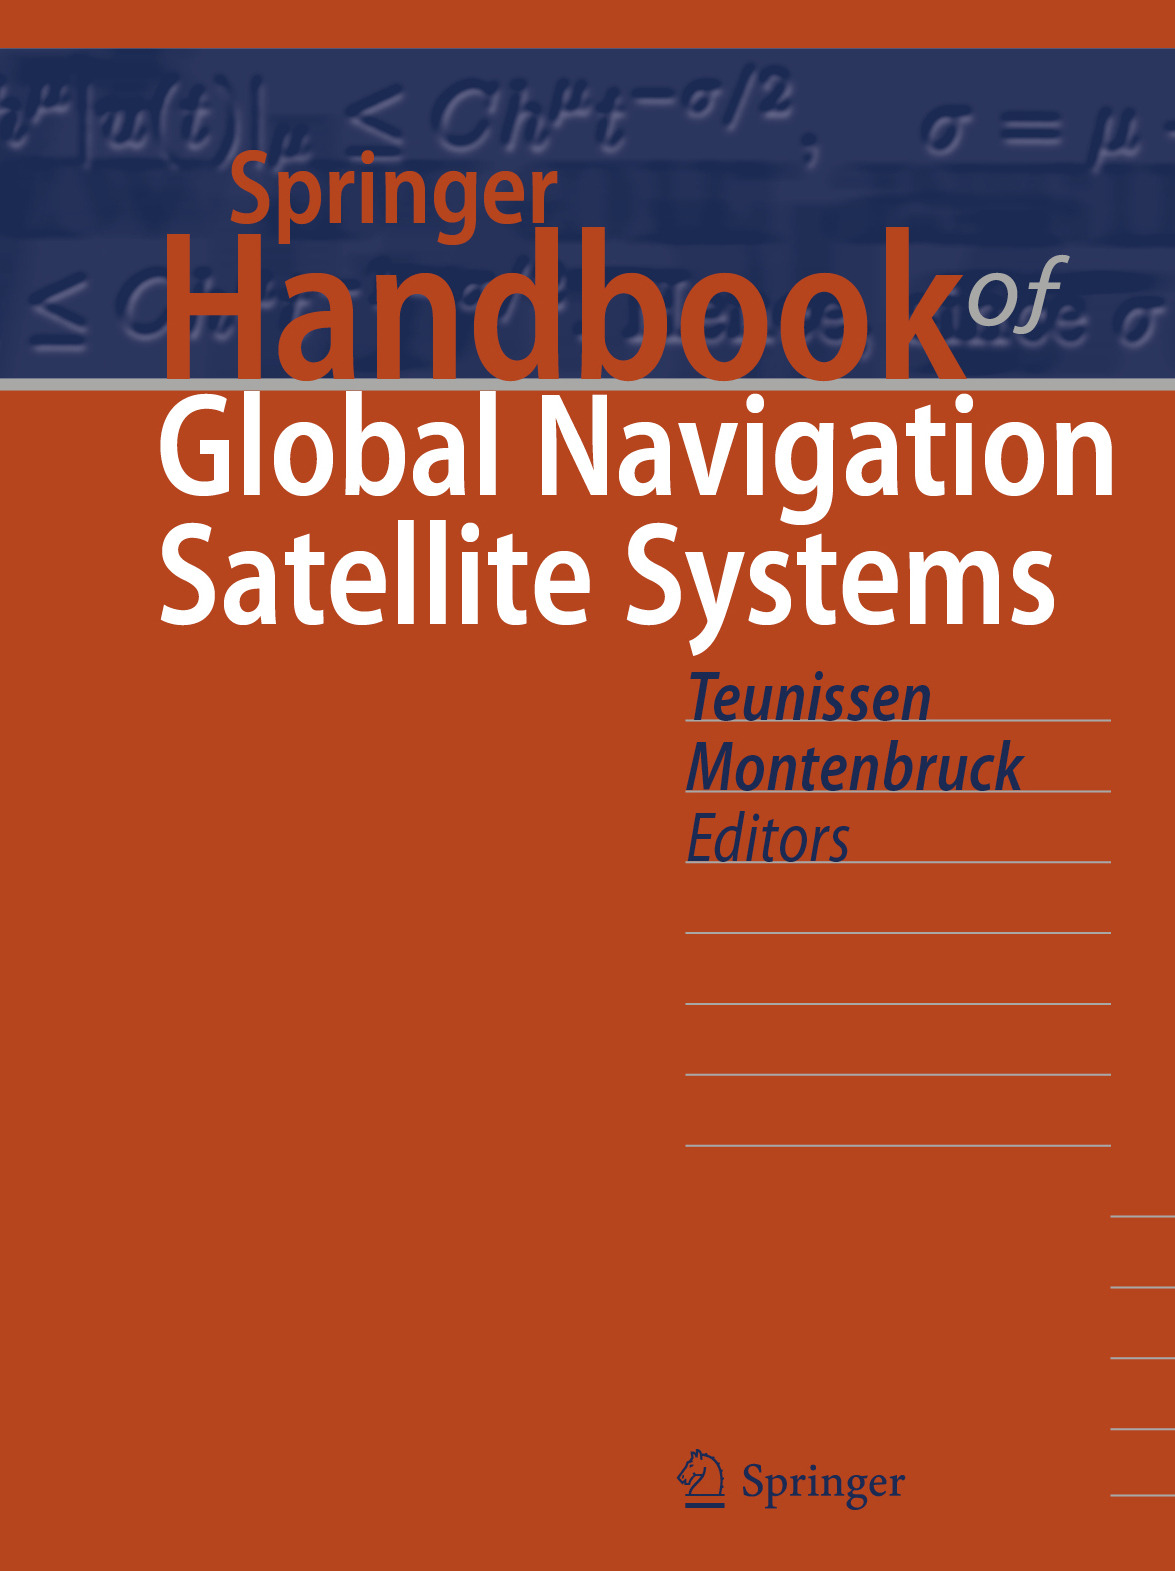 Montenbruck, Oliver - Springer Handbook of Global Navigation Satellite Systems, ebook